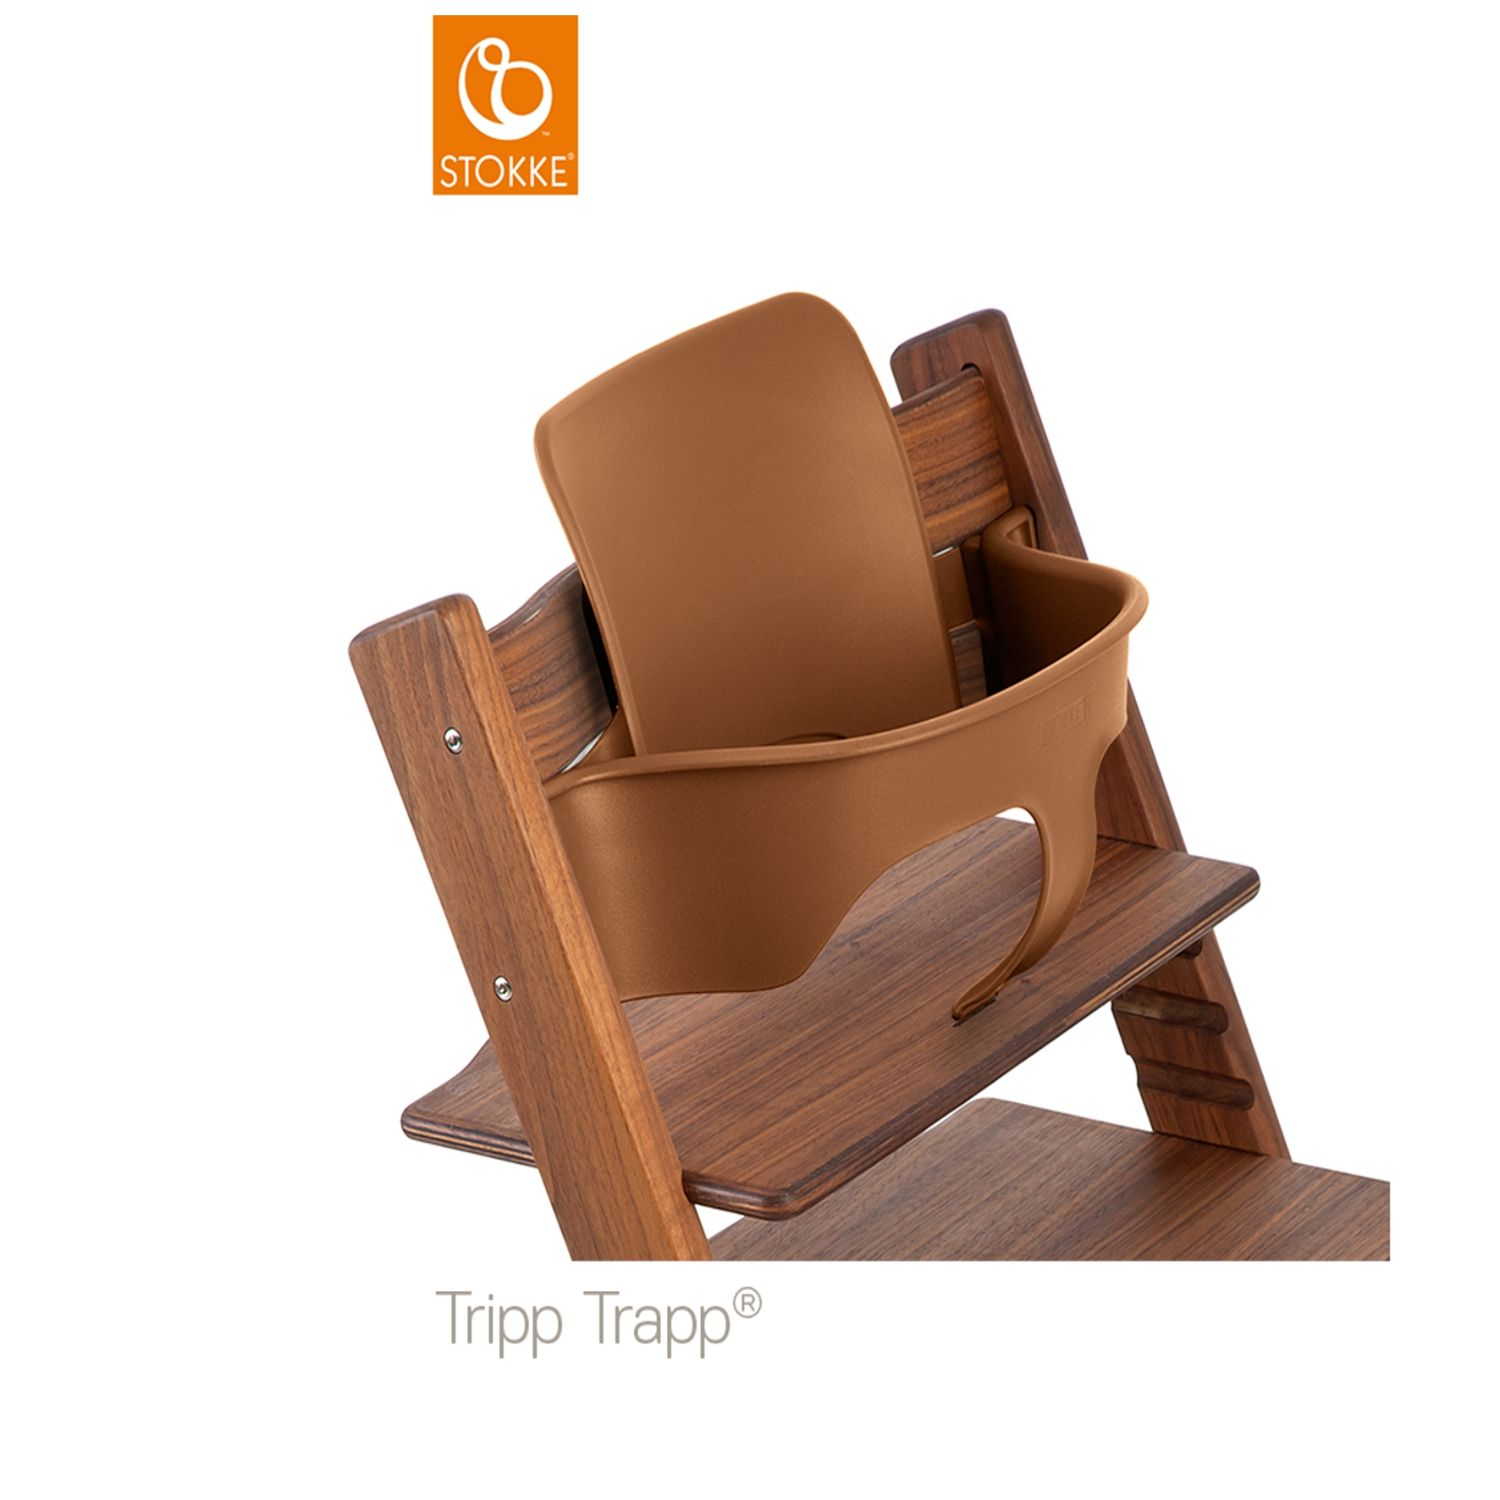 stokke tripp trapp newborn set instructions